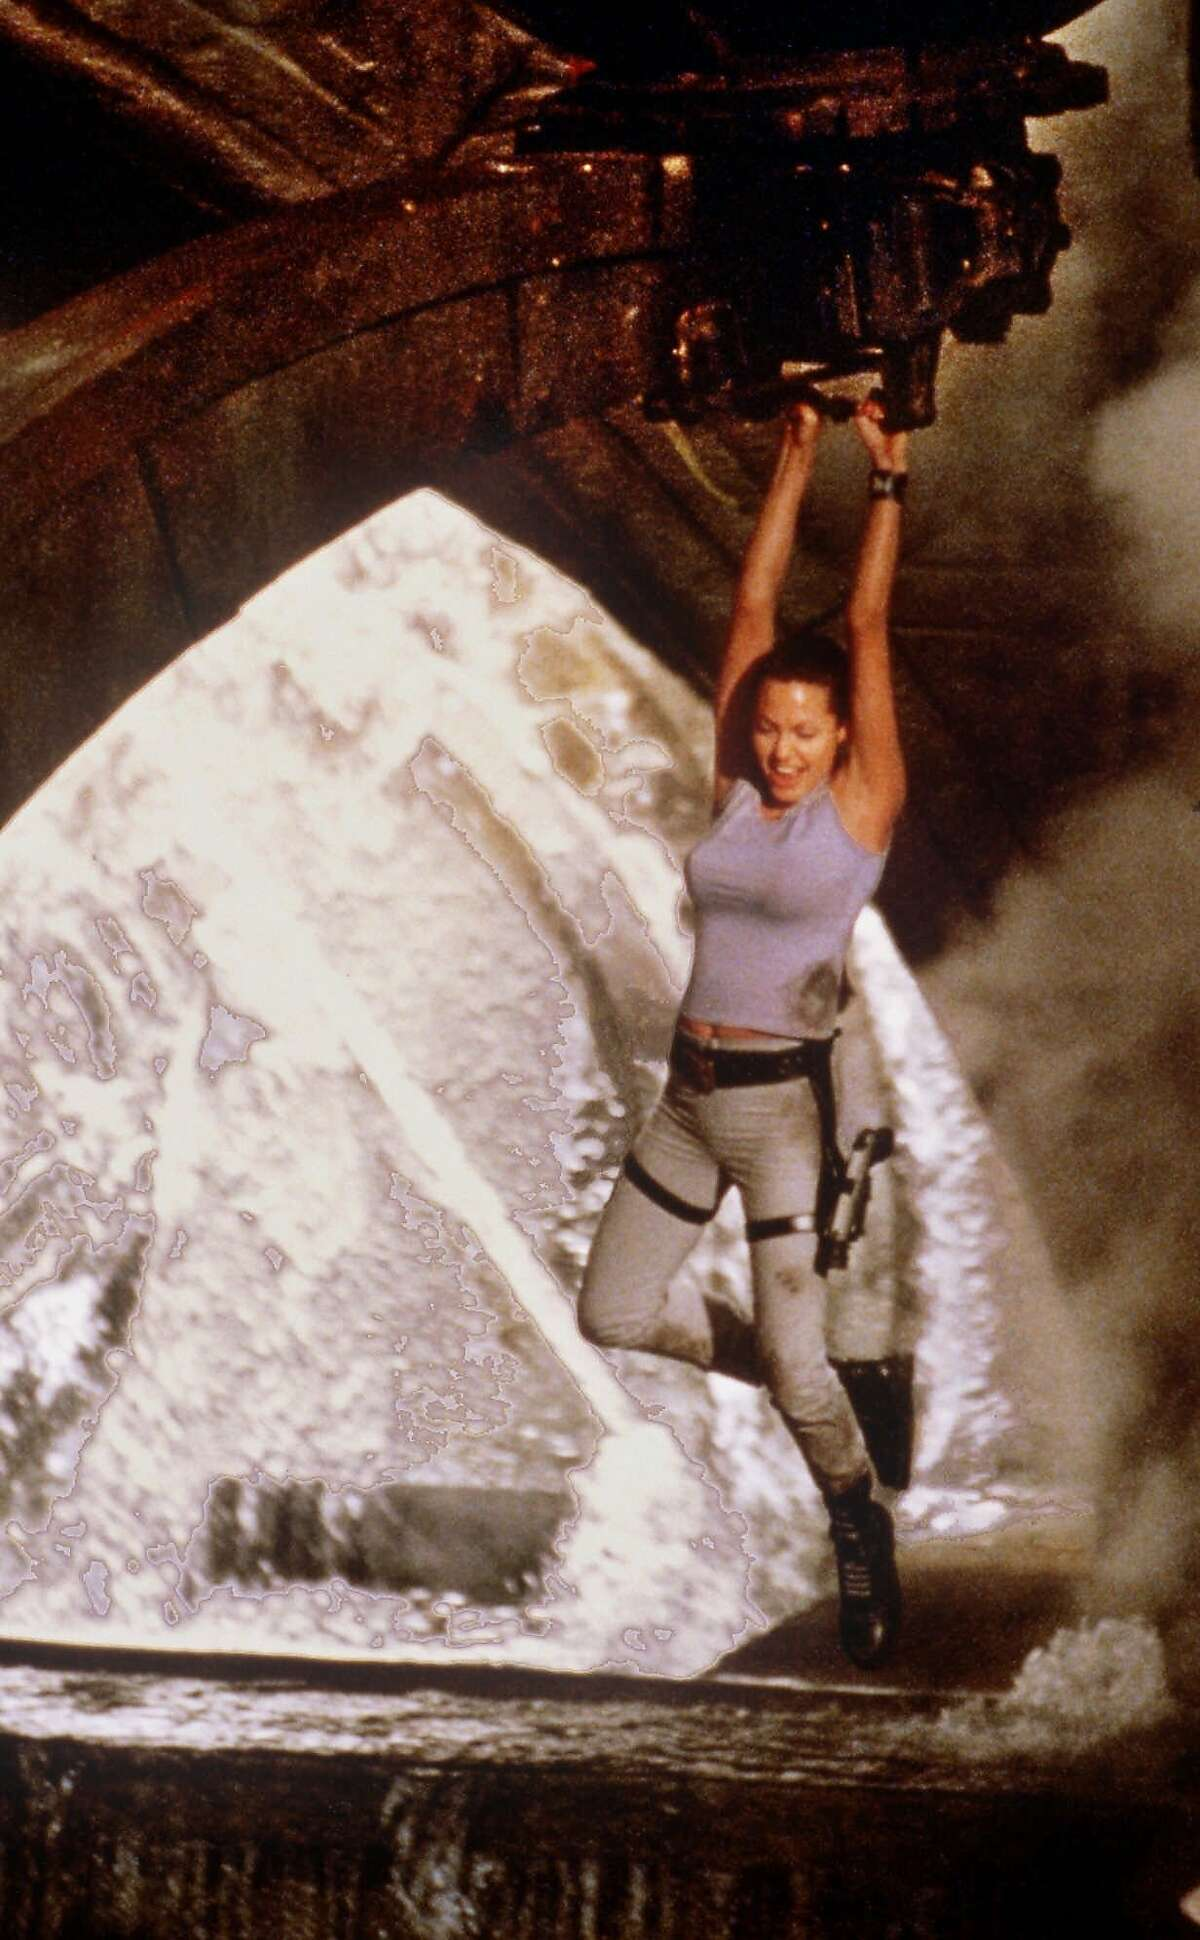 ADVANCE FOR WEEKEND EDITIONS, JUNE 14-17-Actress Angelina Jolie is video-game heroine Lara Croft in this scene from Paramount Pictures'